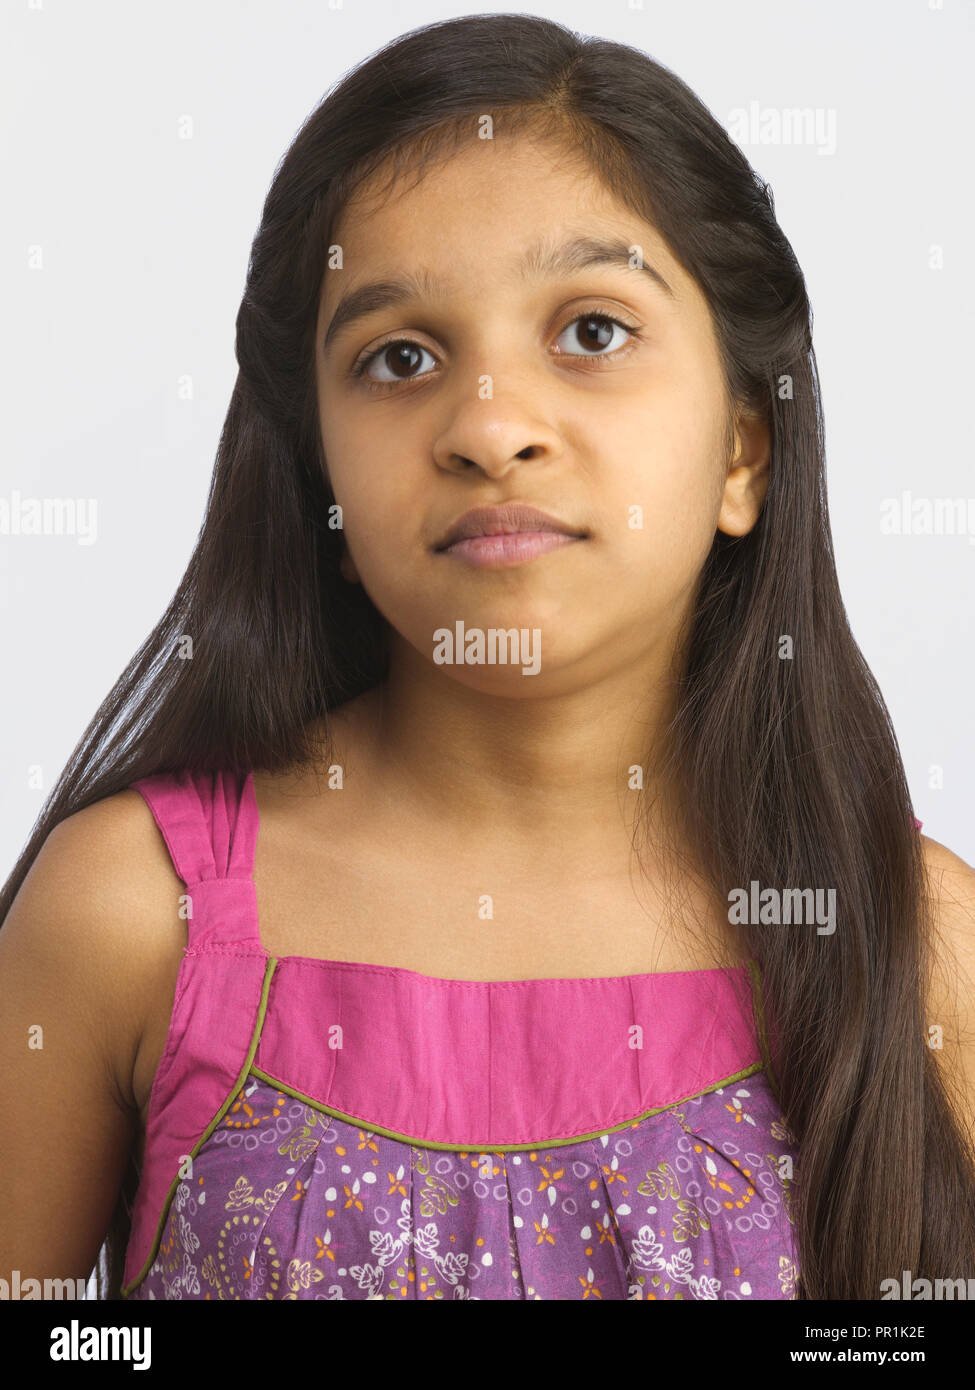 YOUNG GIRL FROWNING SHOT AGAINST A PLAIN BACKGROUND Stock Photo